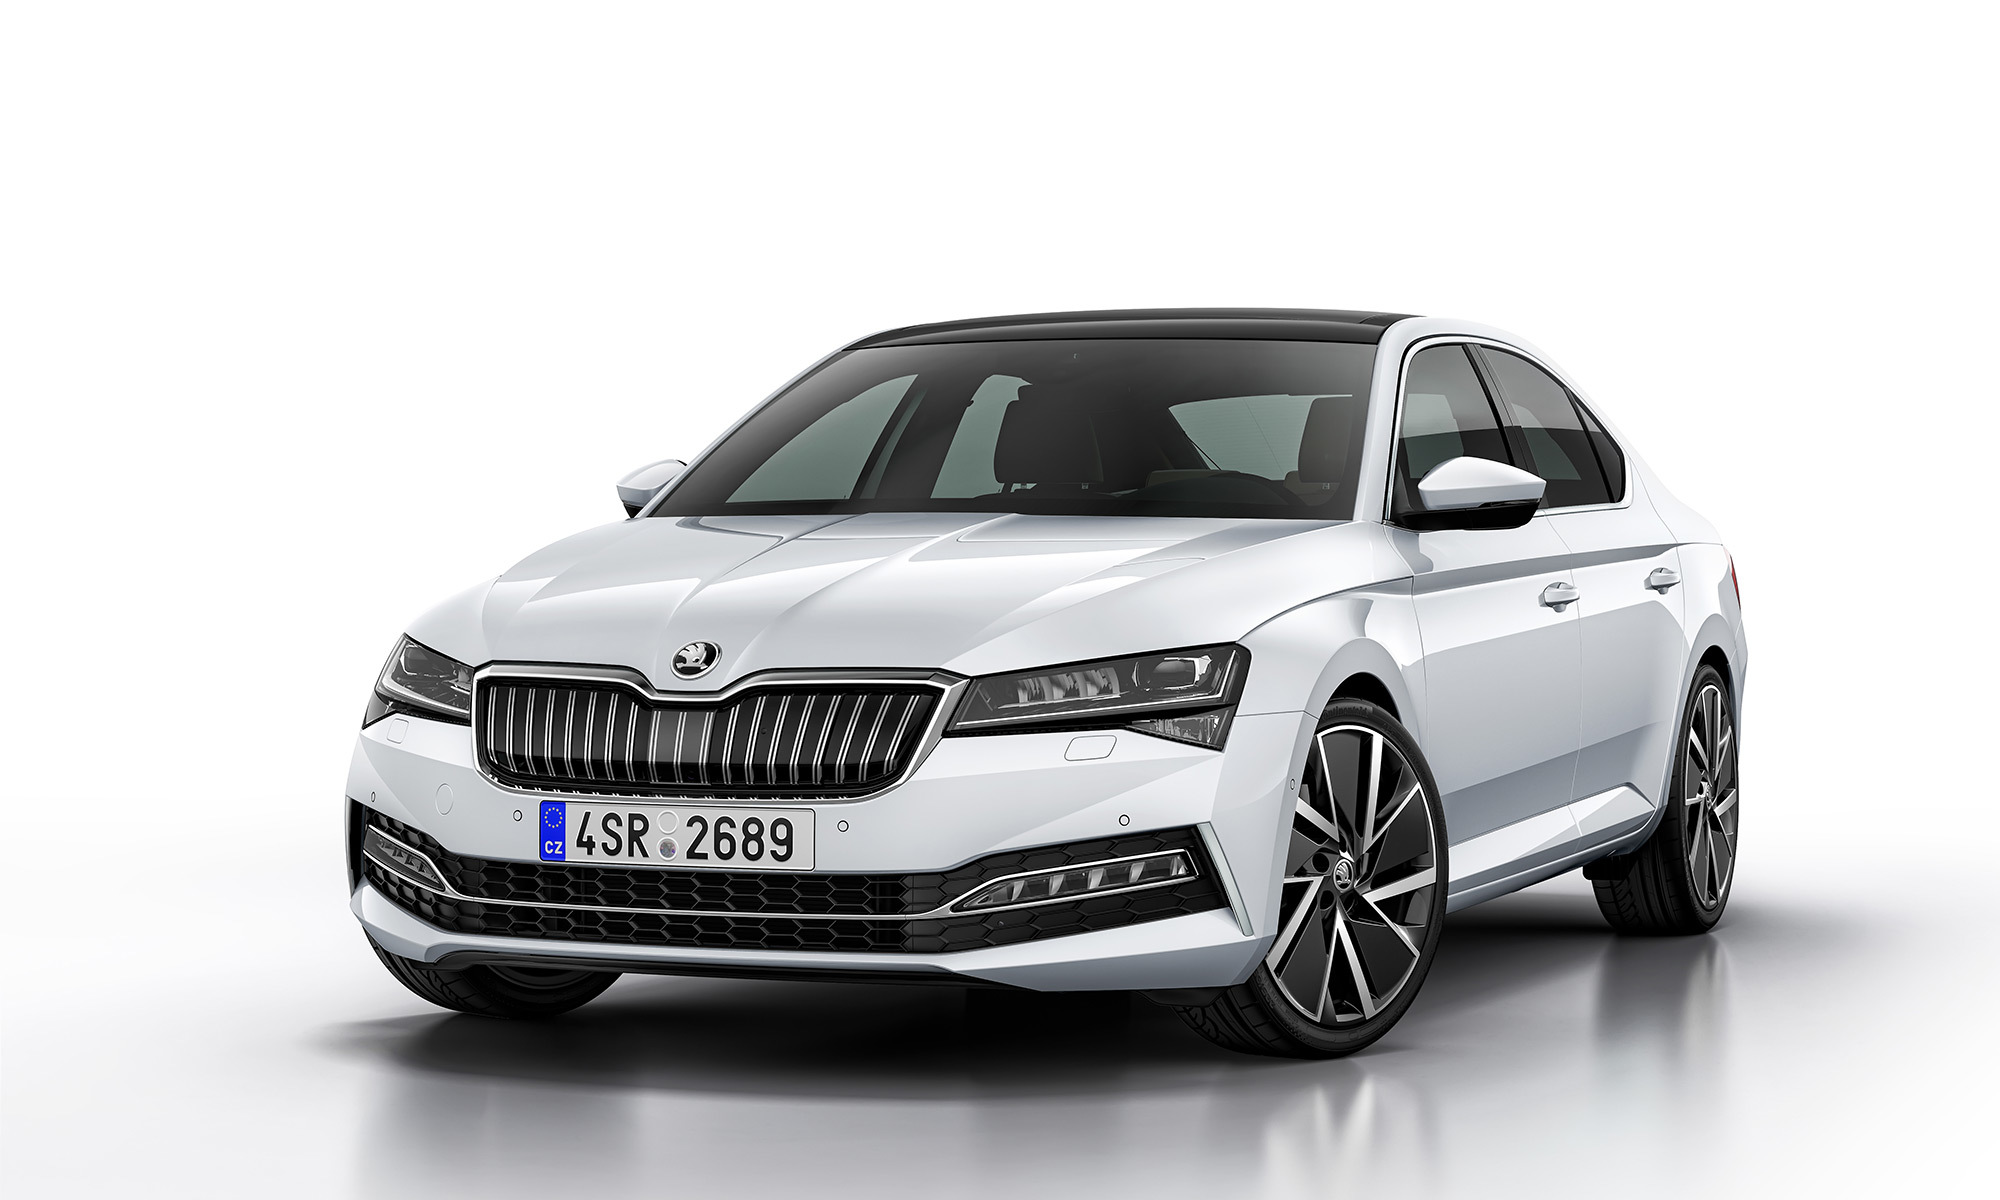 ŠKODA Superb iV (2020)